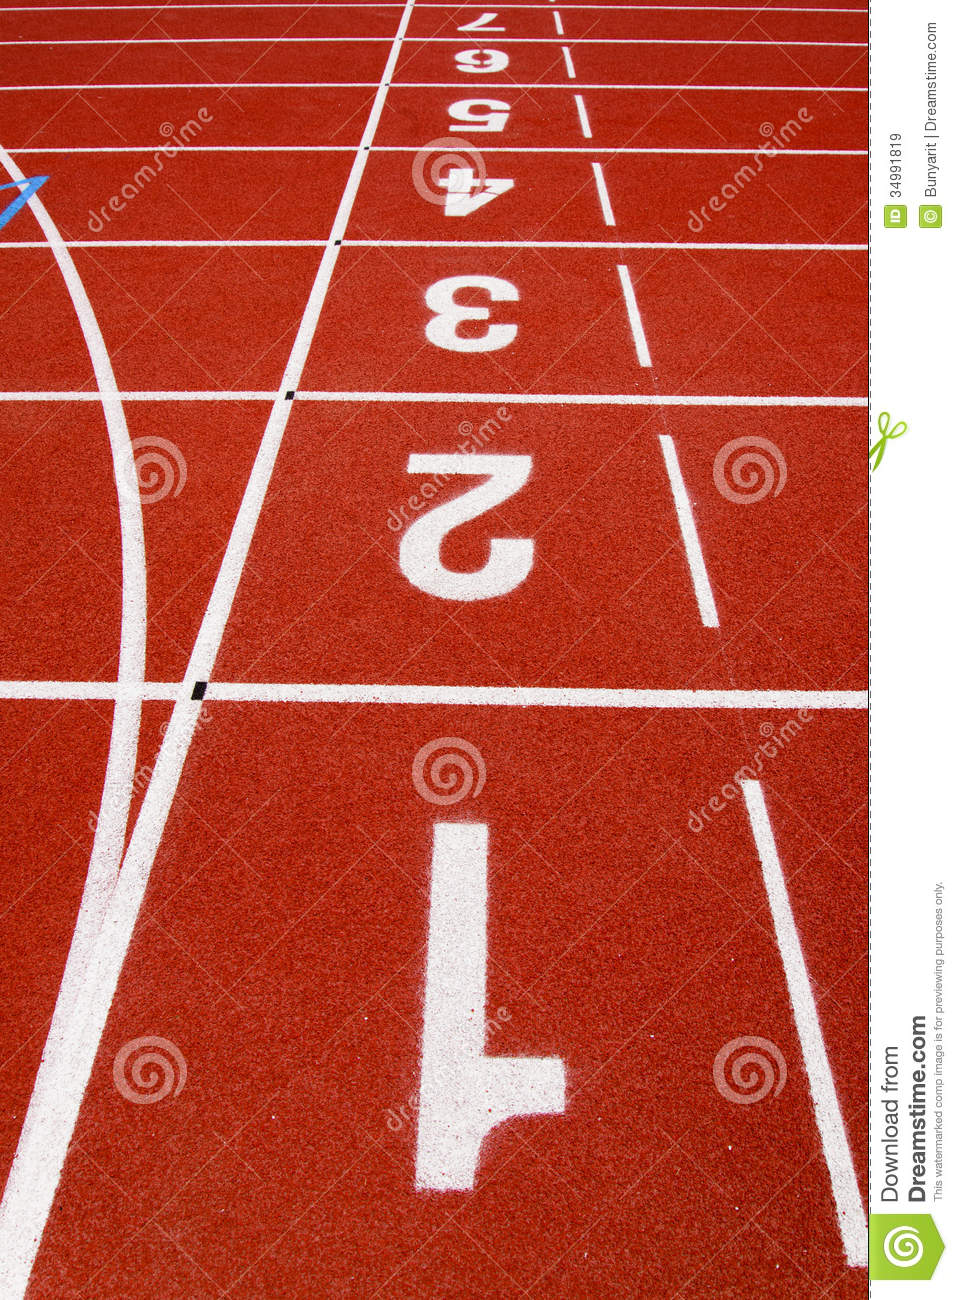 Red race for running